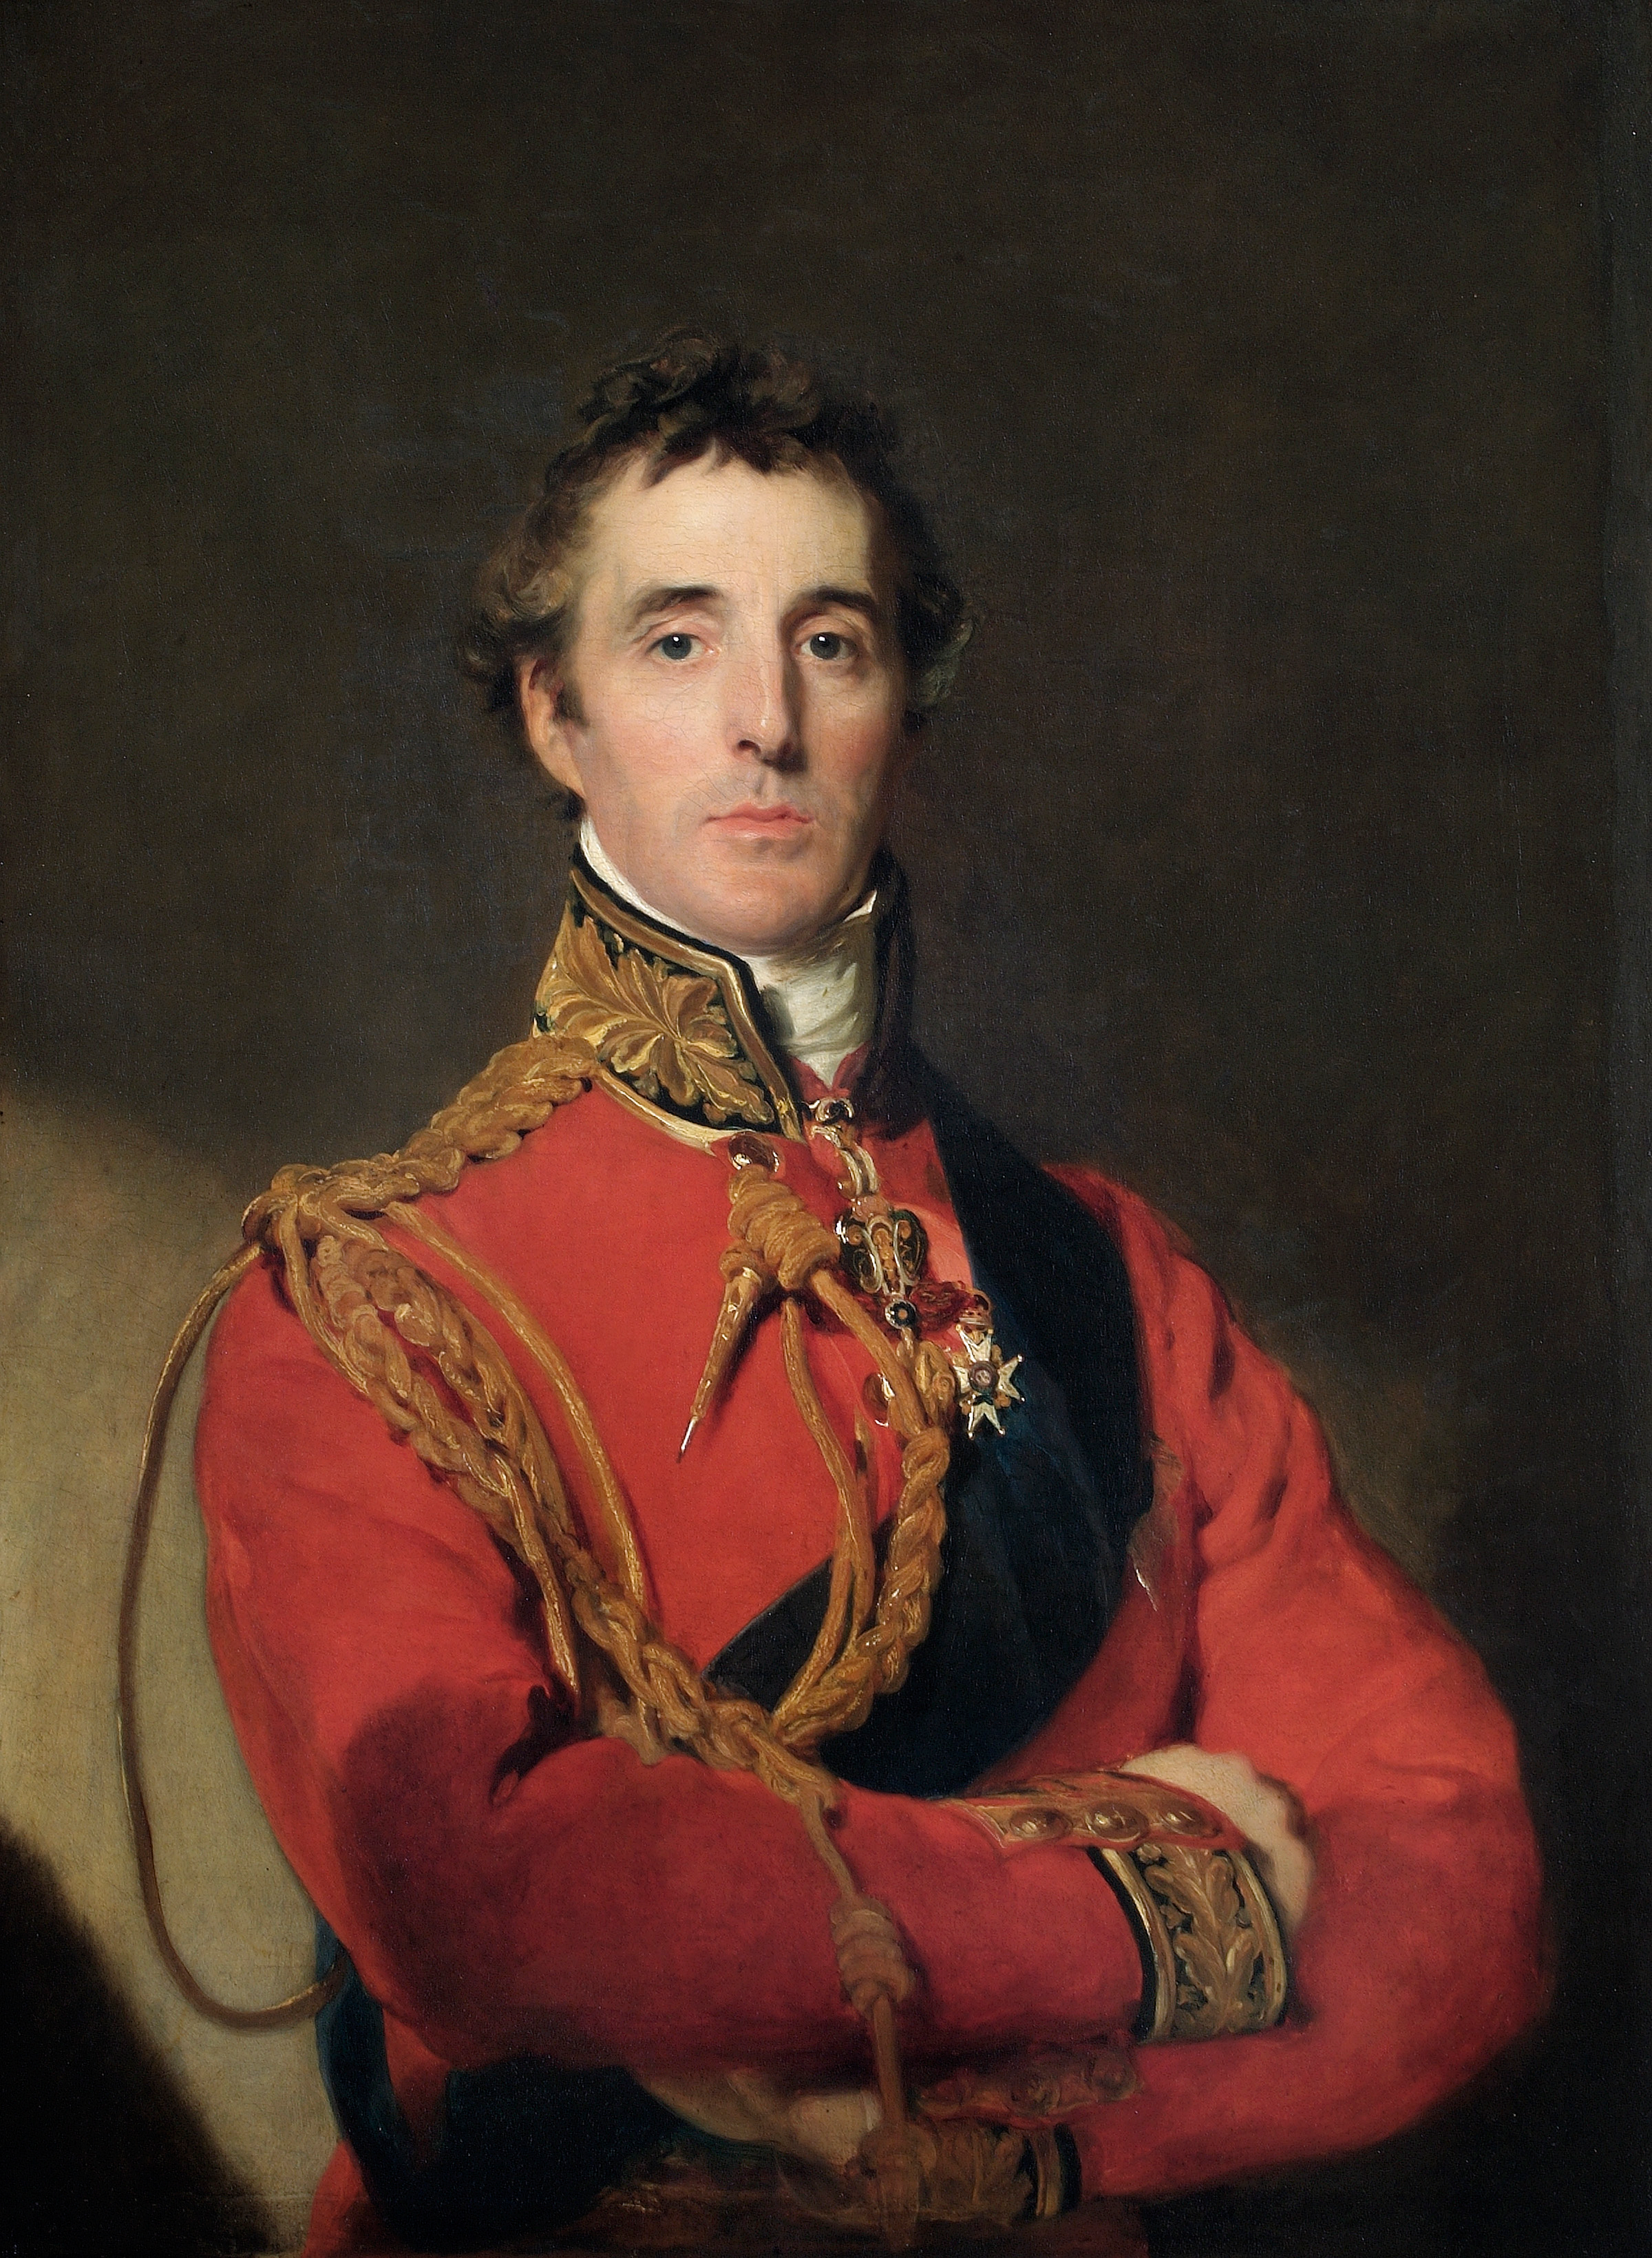 Arthur Wellesley St Duke Of Wellington Wikipedia - If celebrities were 19th century military generals they would look like this